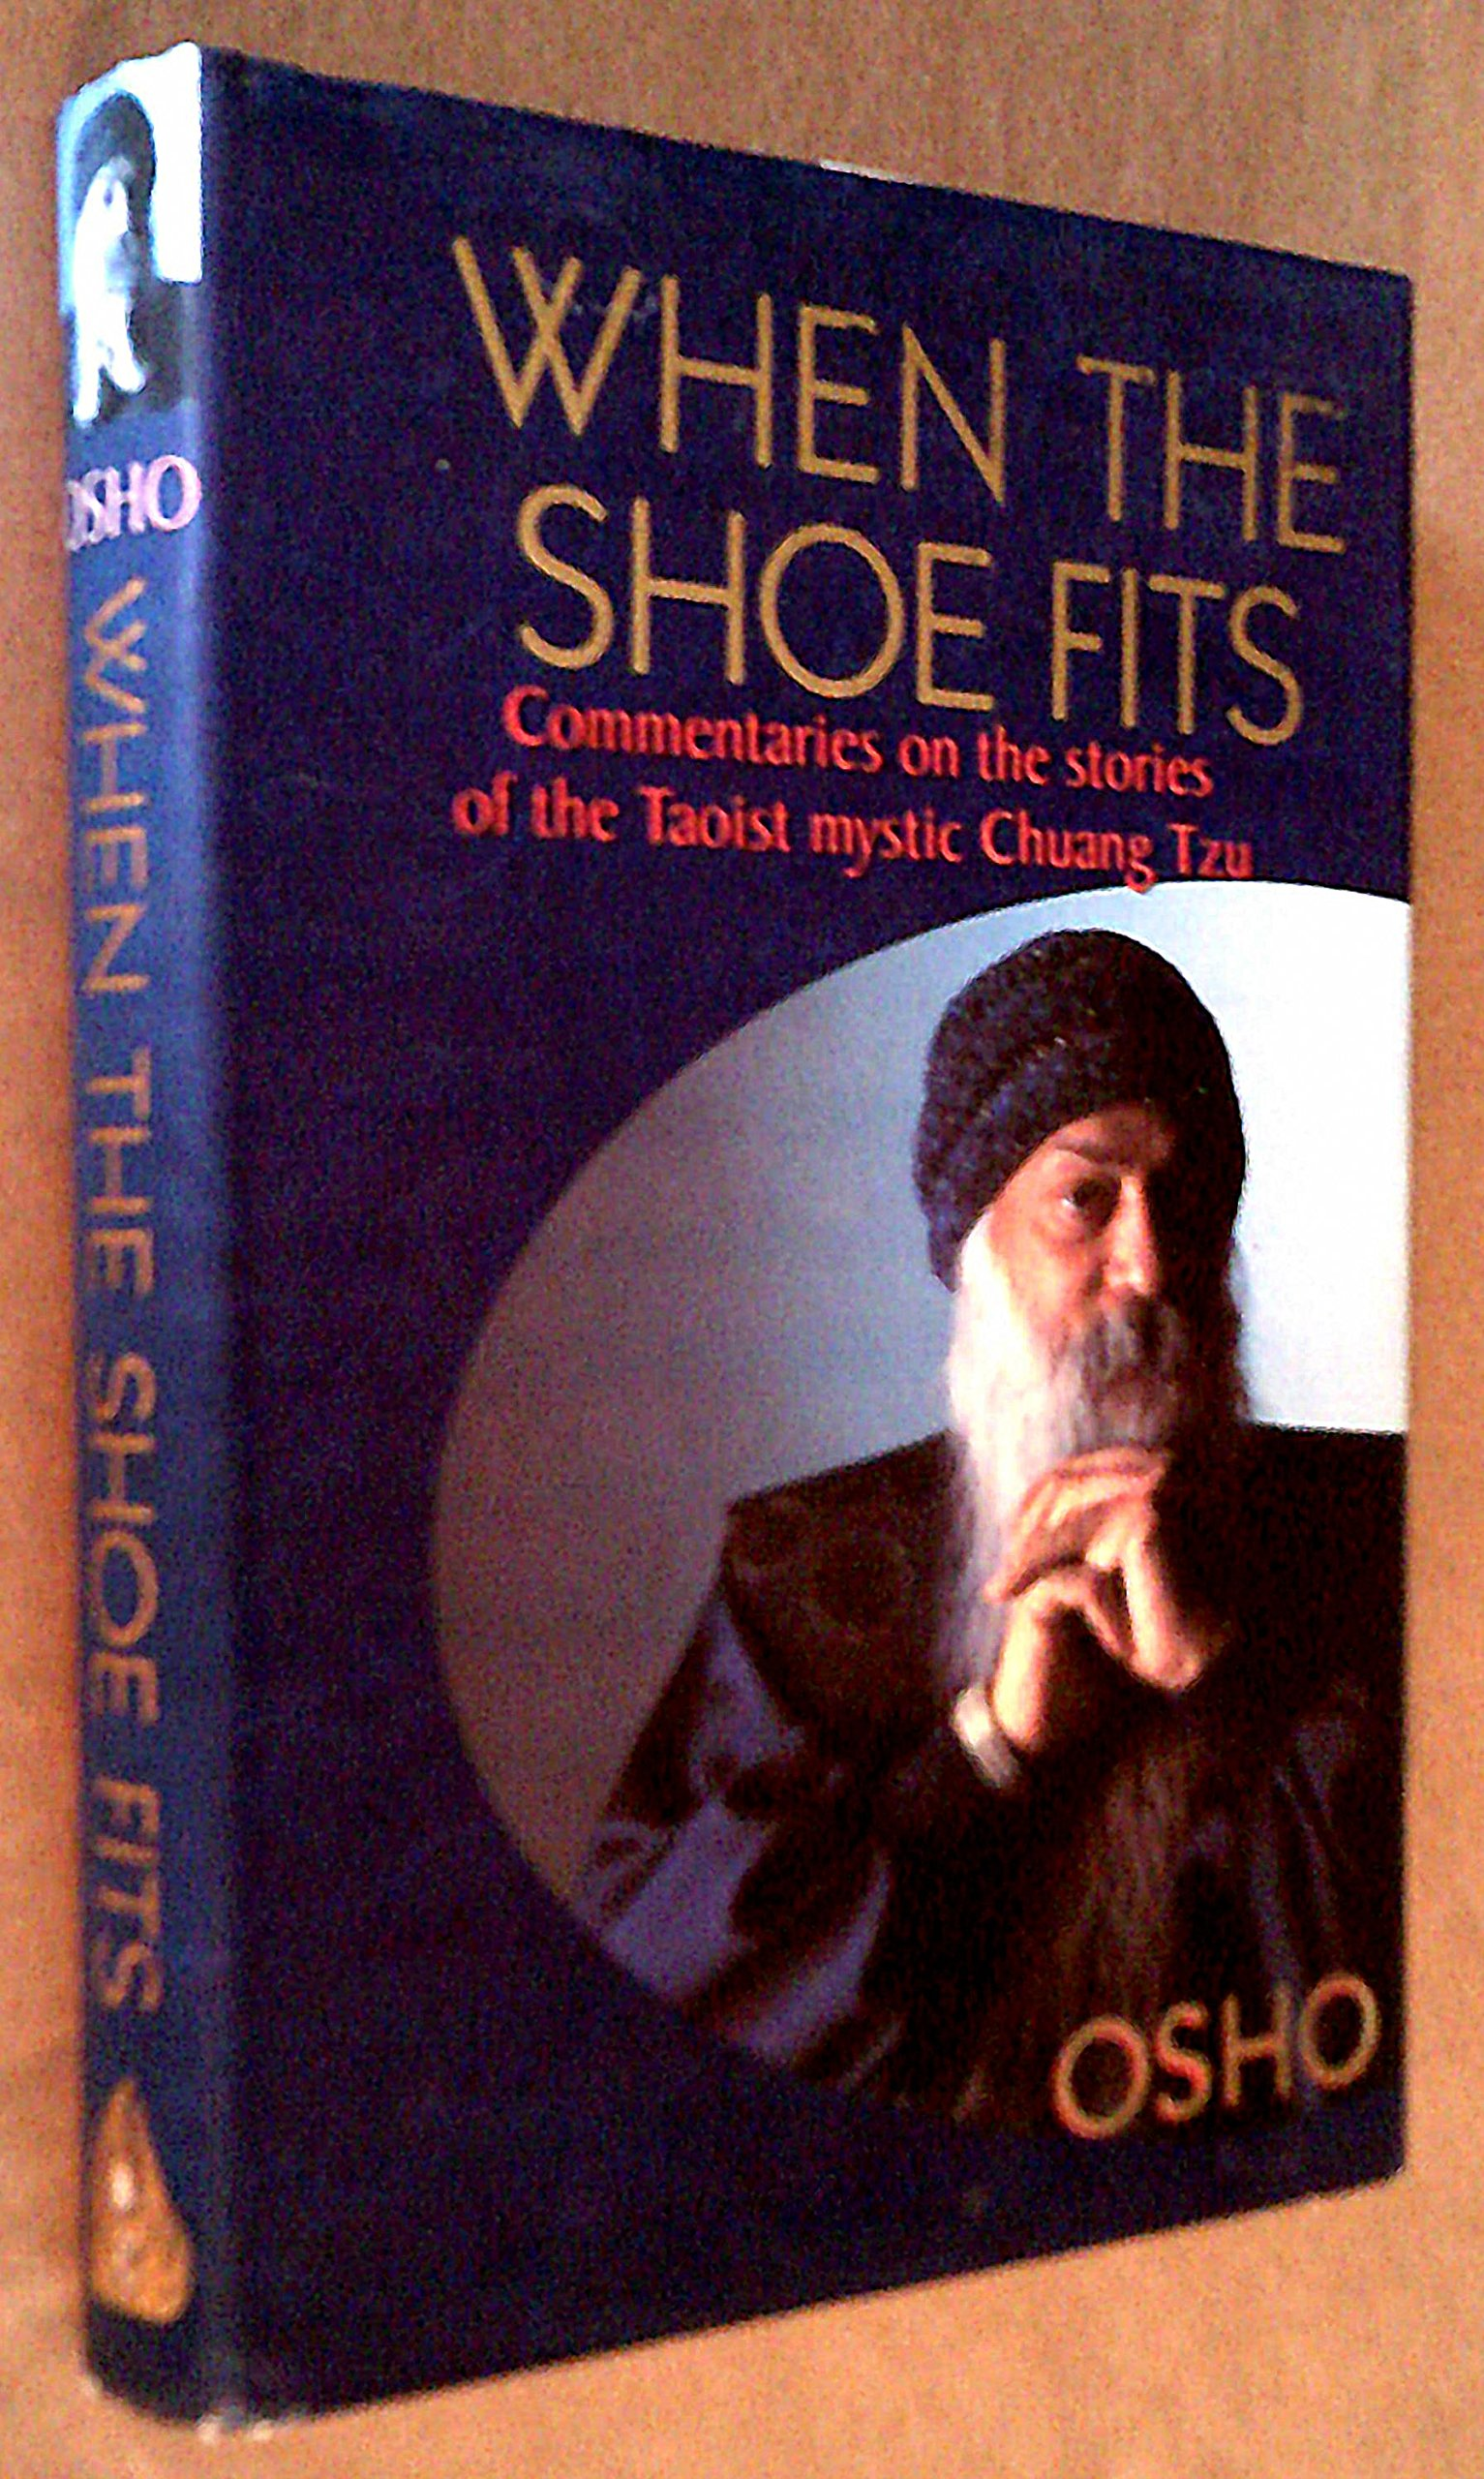 When the Shoe Fits: Commentaries on the Stories of the Taoist Mystic Chuang Tzu